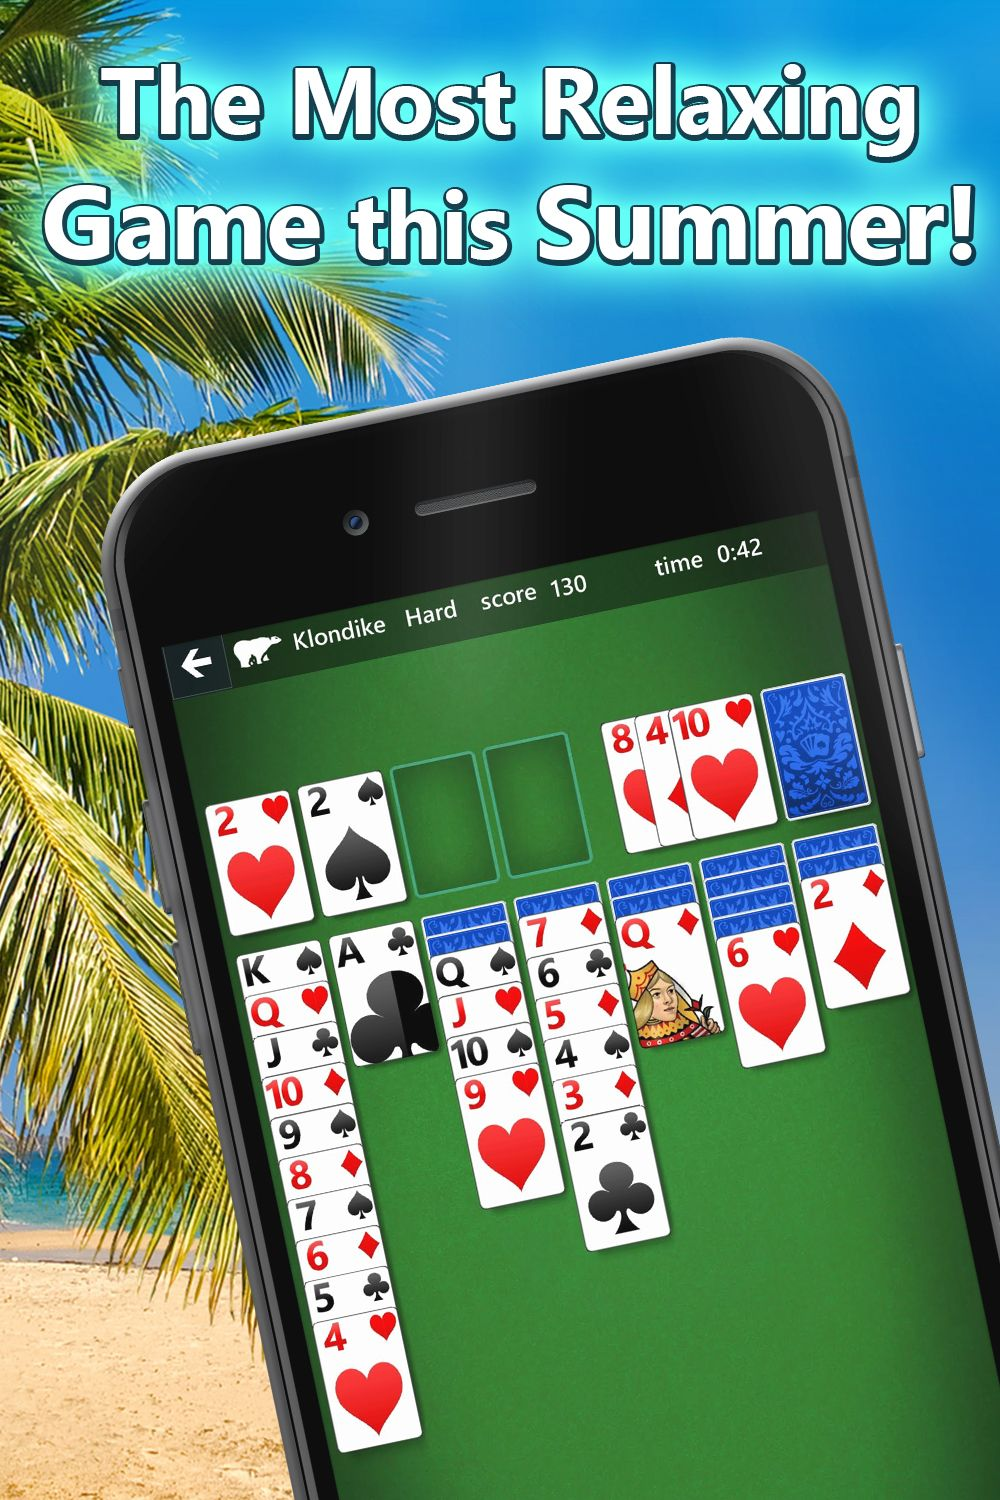 Pin by Dr shubha Shah on My saves in 2020 App, Solitaire